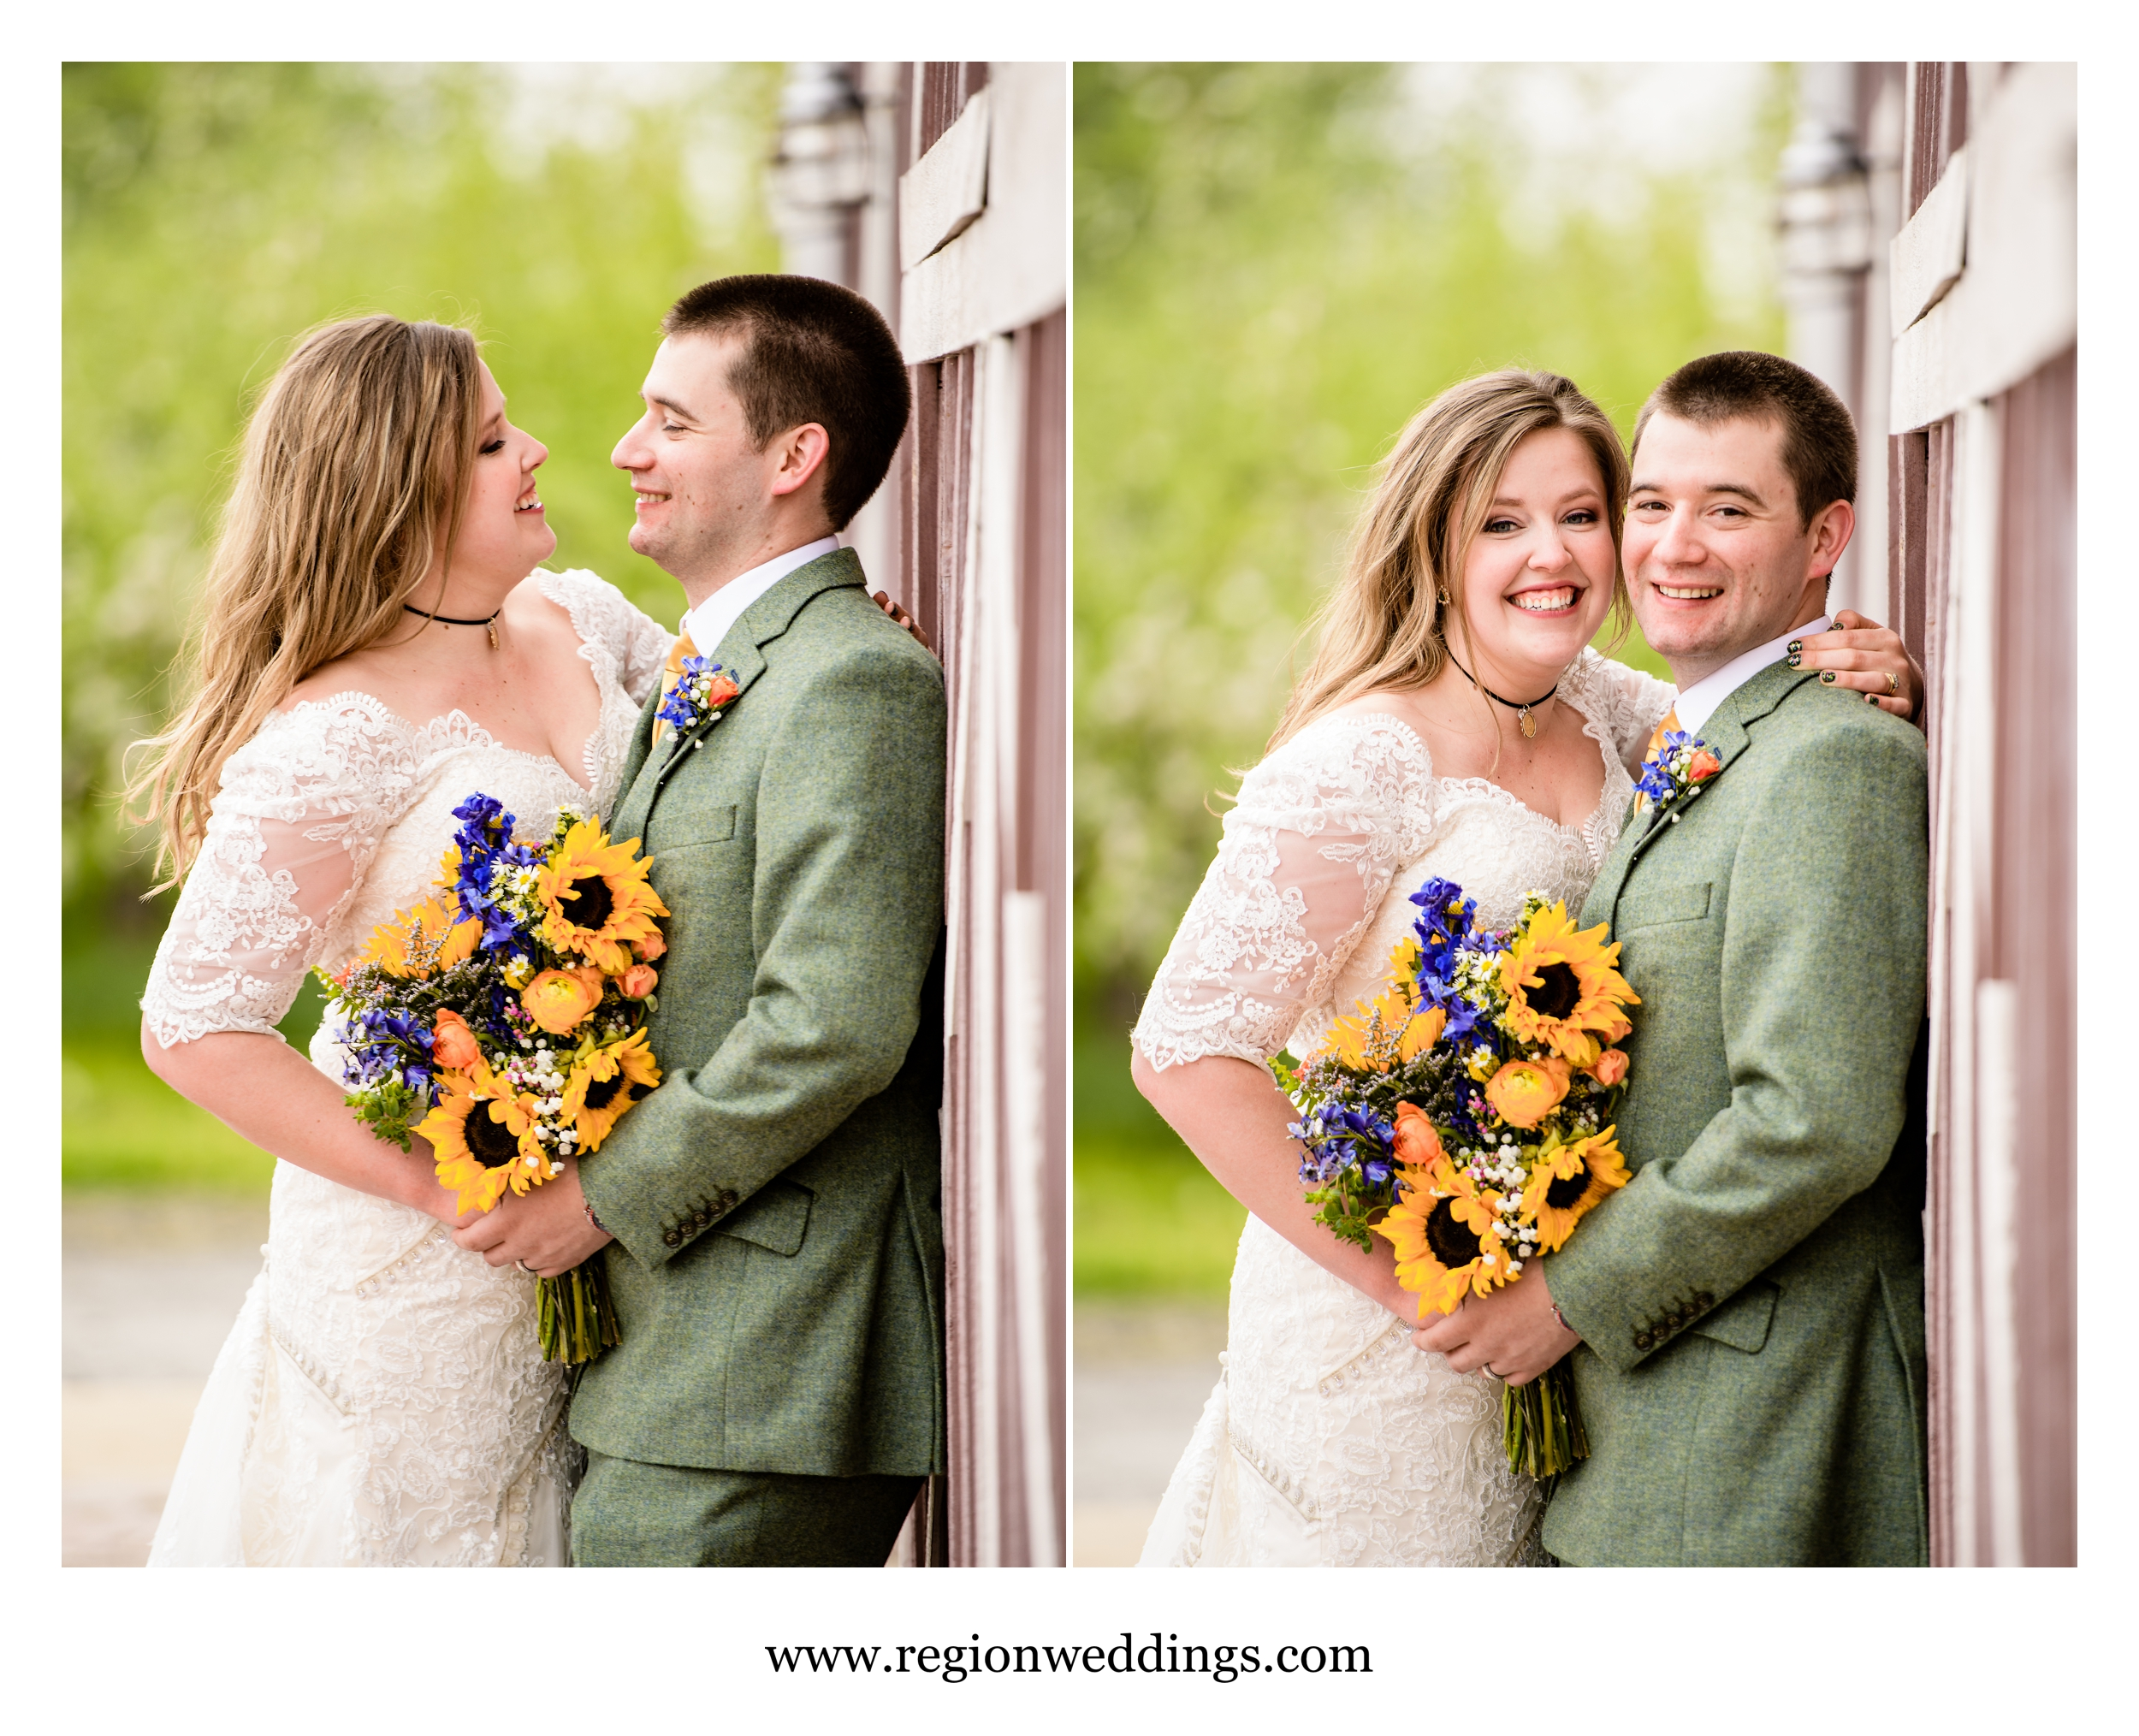 The happy couple at their barn wedding at County Line Orchard.